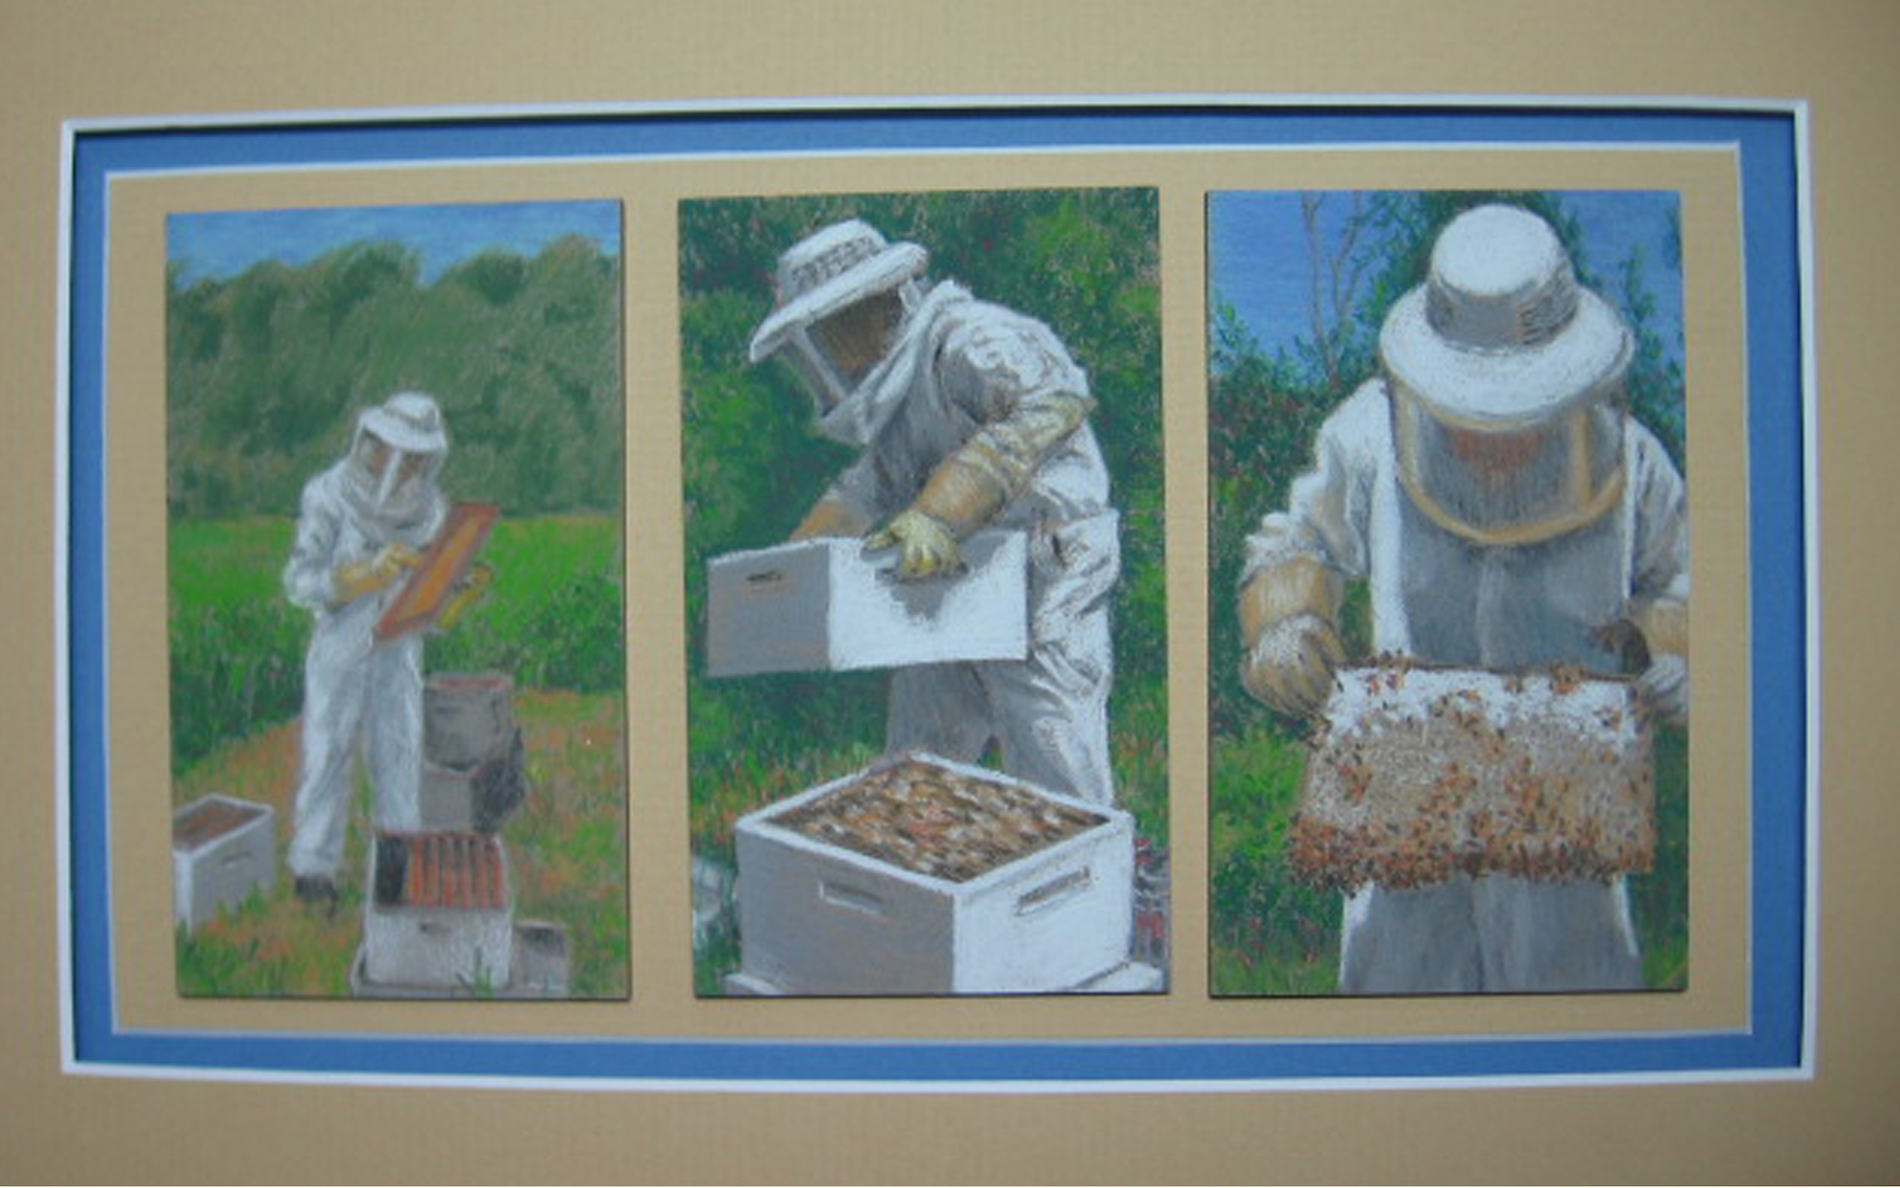 Reid, Joan, David & His Bees